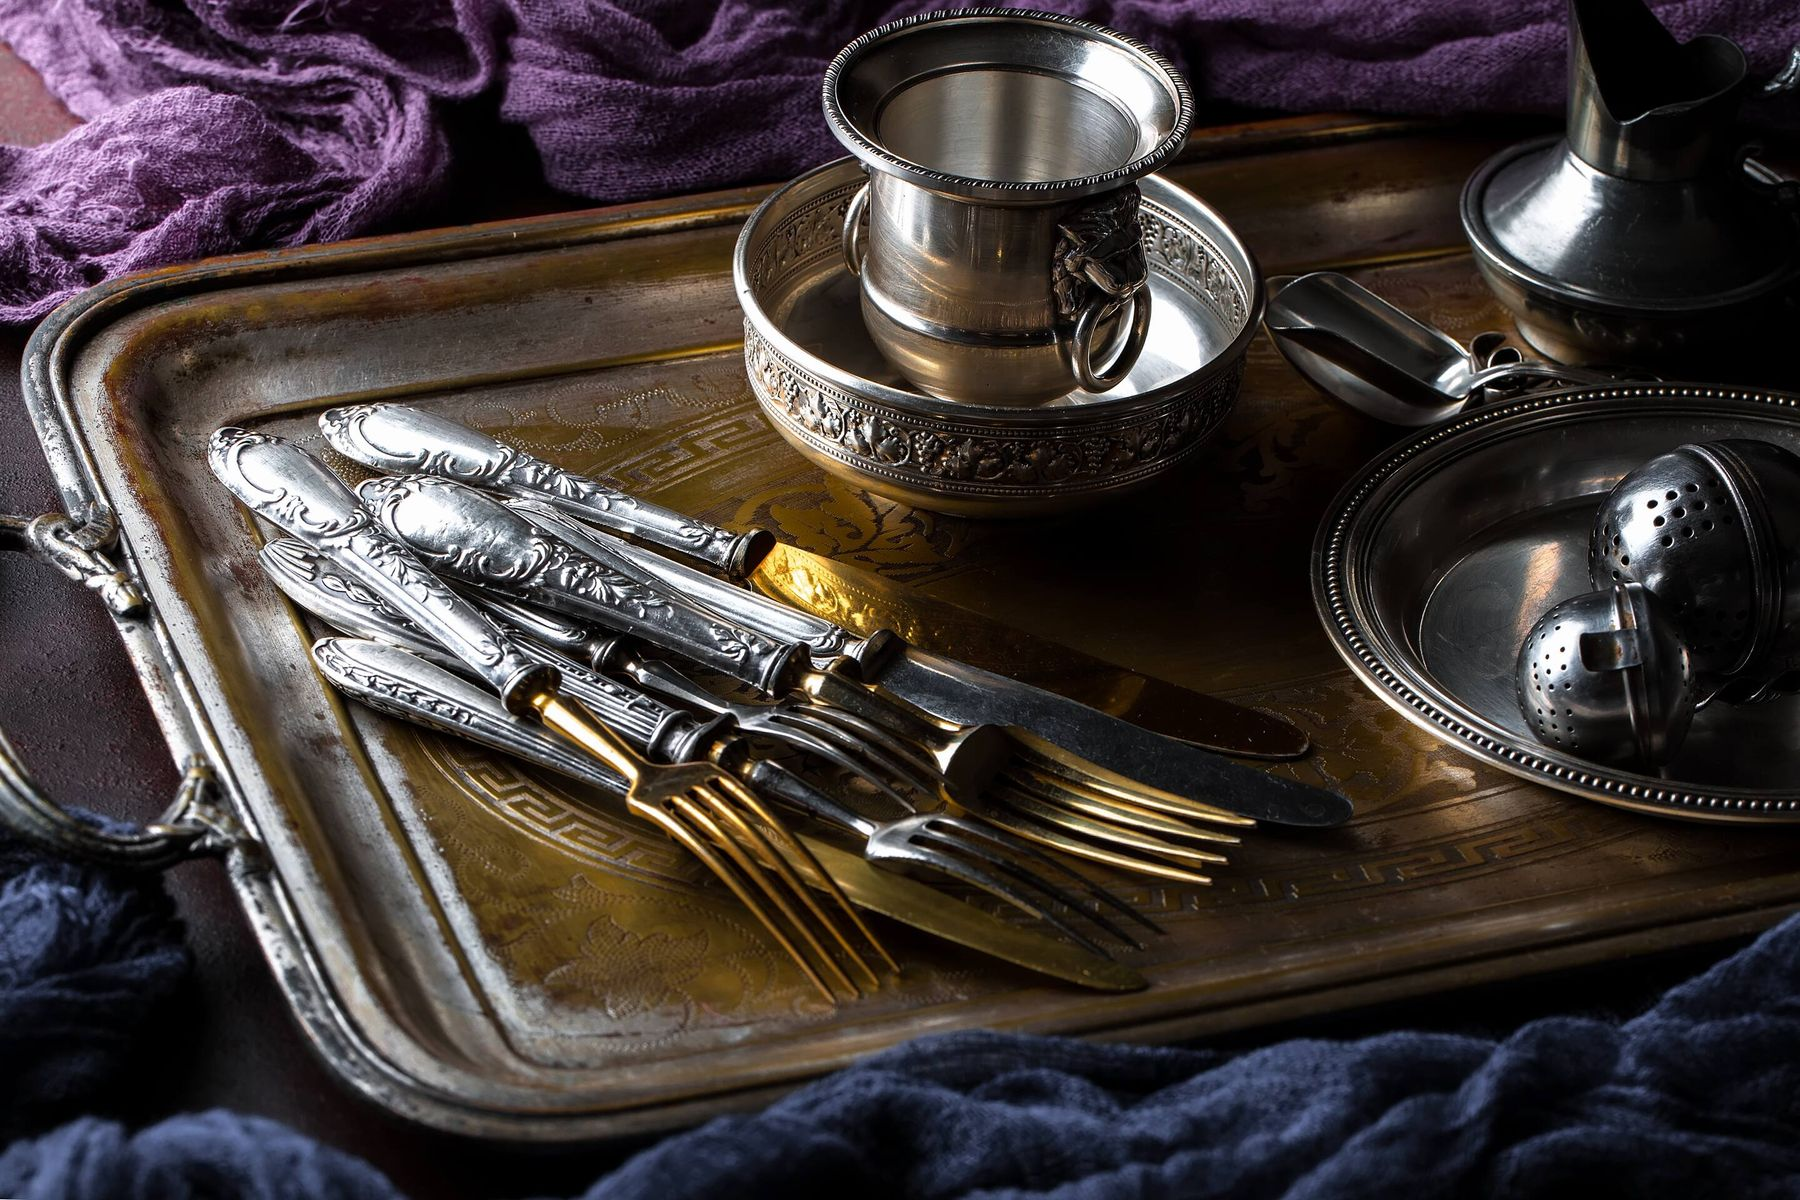 How to clean and care for your beautiful silverware